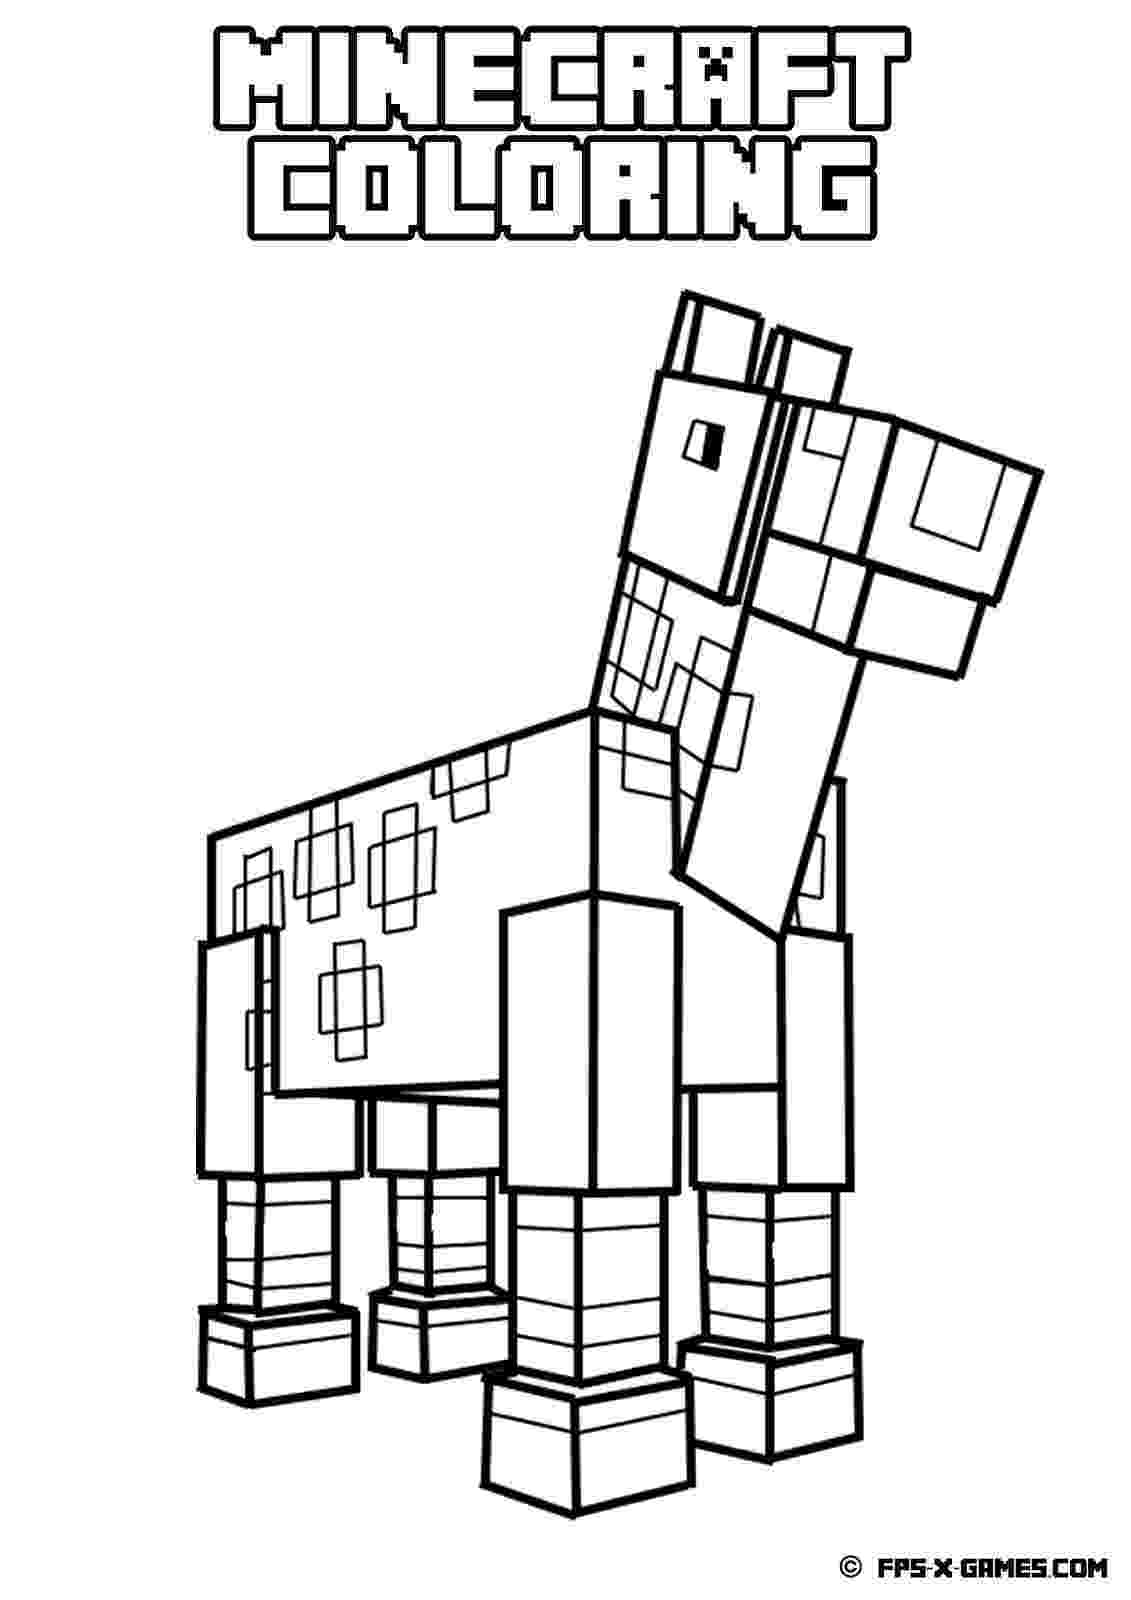 minecraft coloring pages to print 7 best images about minecraft coloring ebook 1 on to print pages minecraft coloring